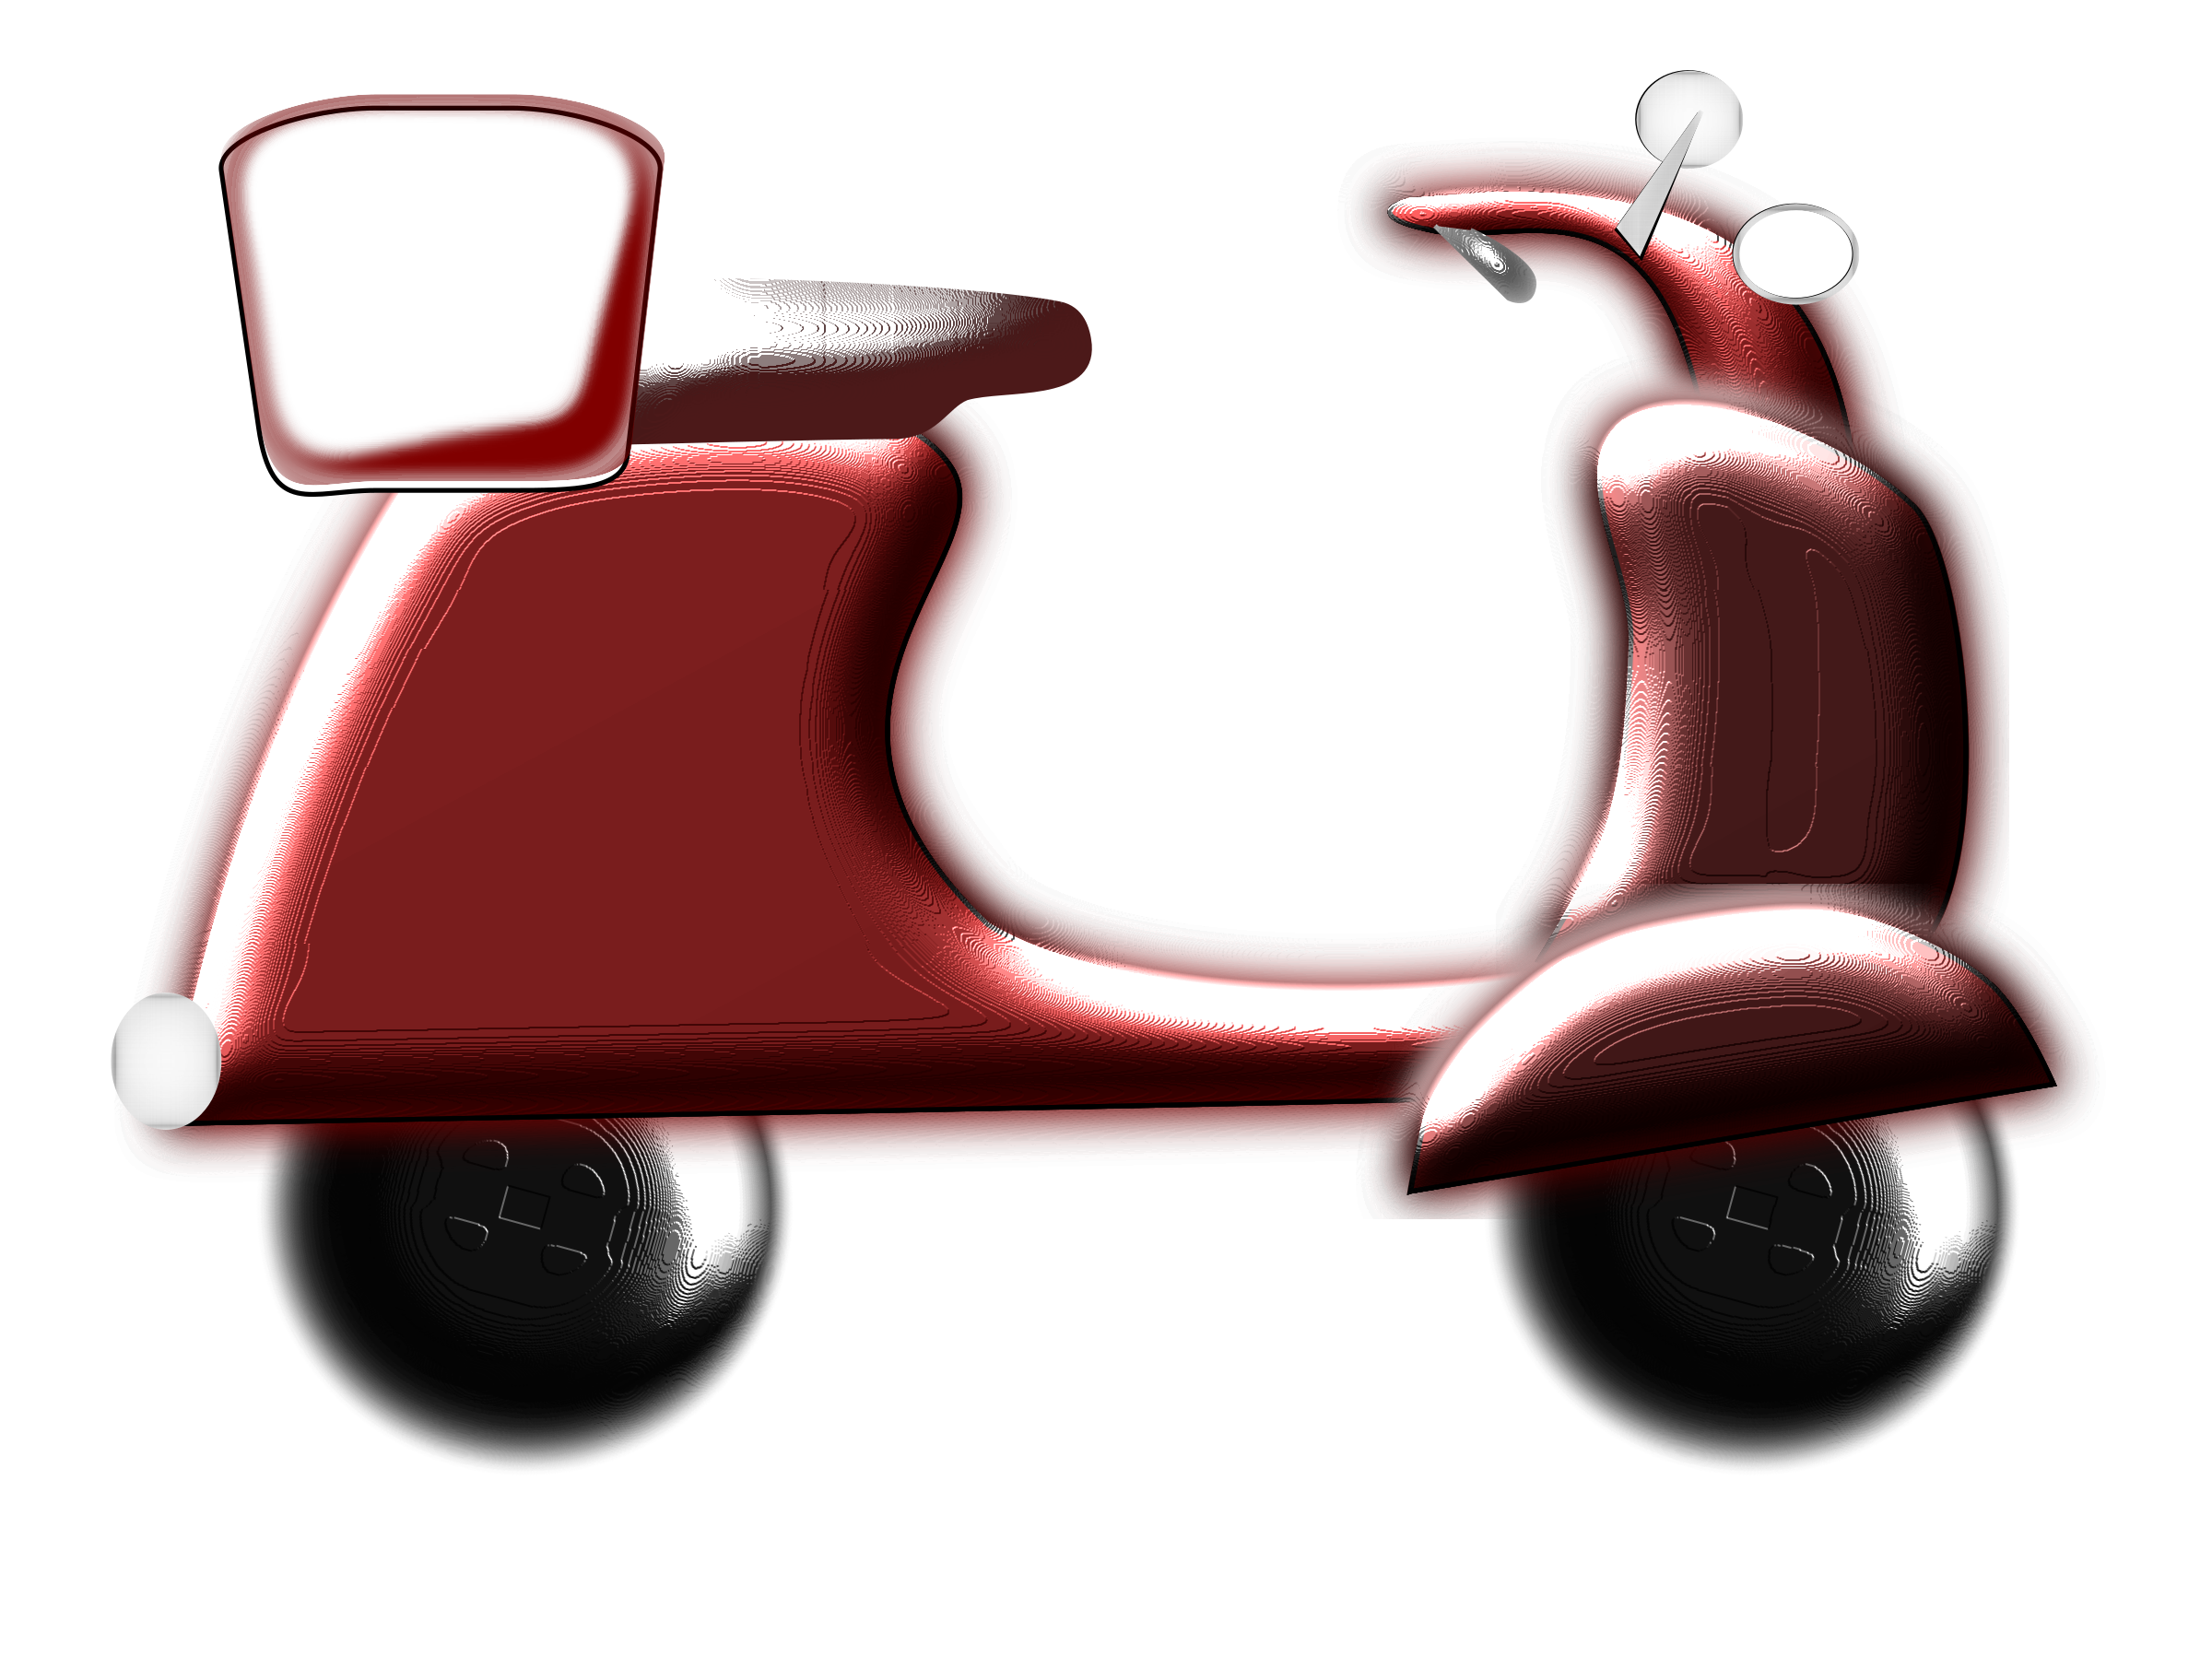 D big image png. Scooter clipart red scooter